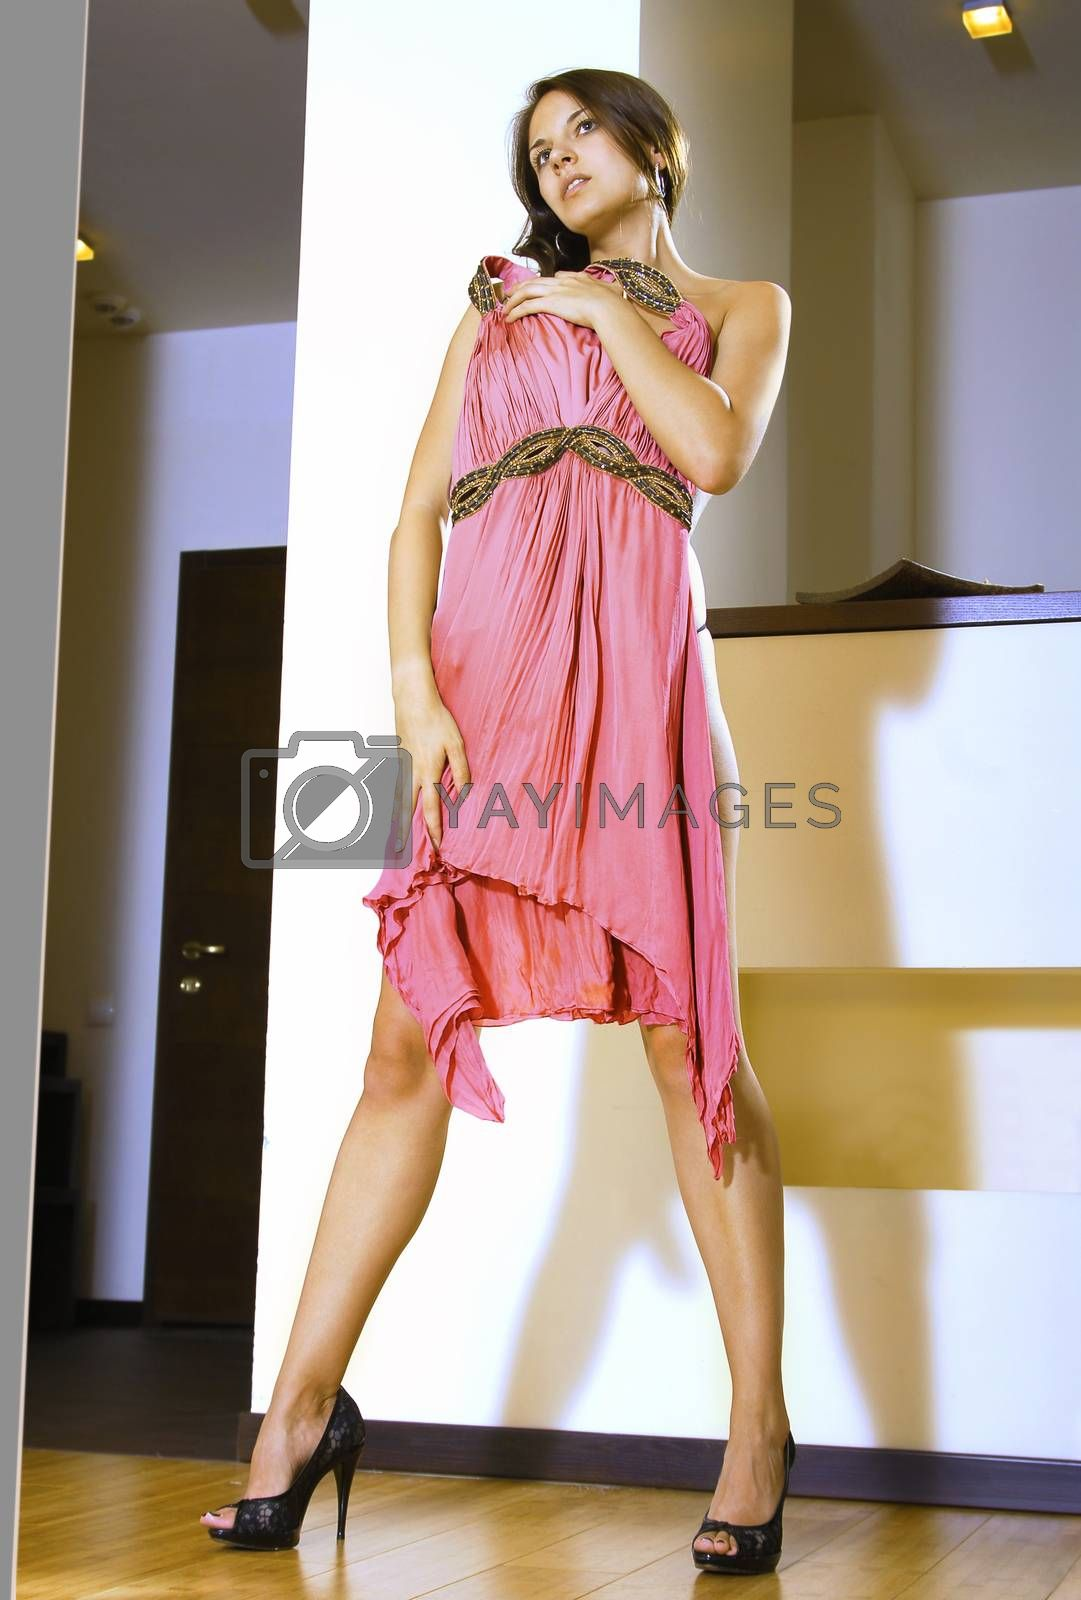 beautiful woman fits on new pink dress in the shopping mall